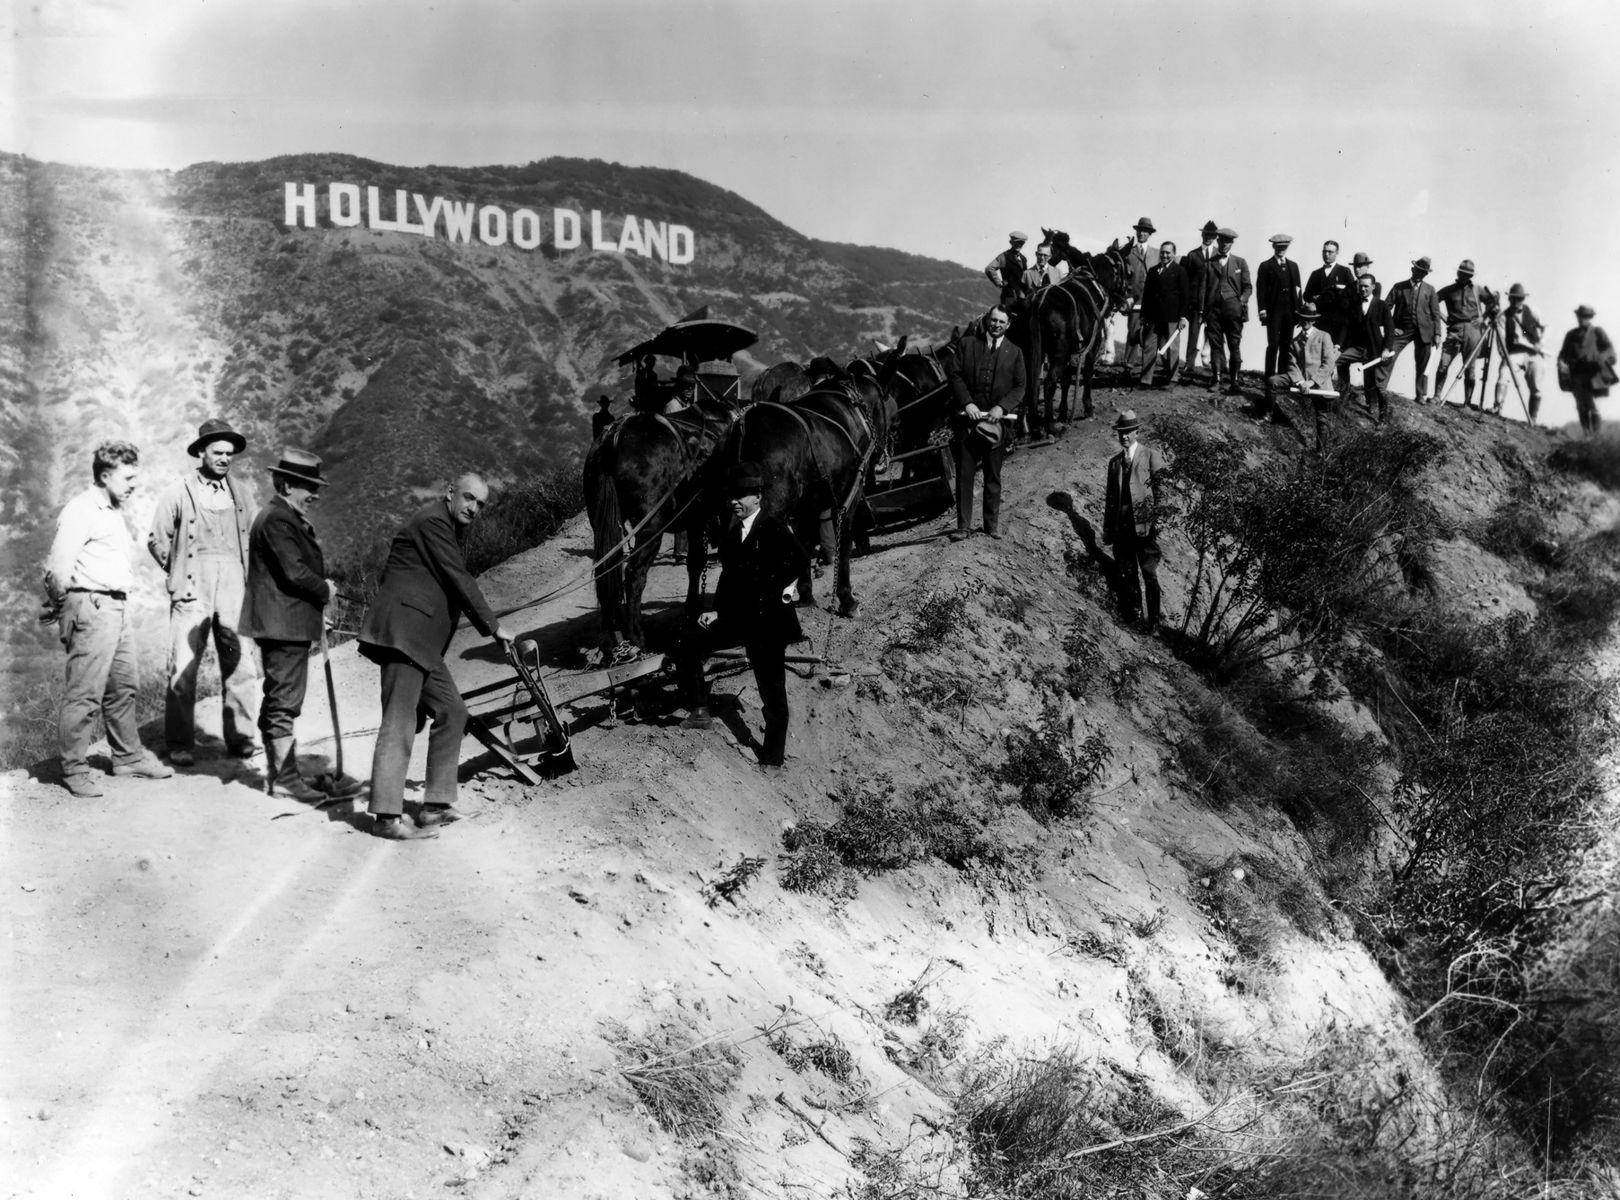 Oldest Footage of Los Angeles | Les plus anciennes vidéos de Los Angeles